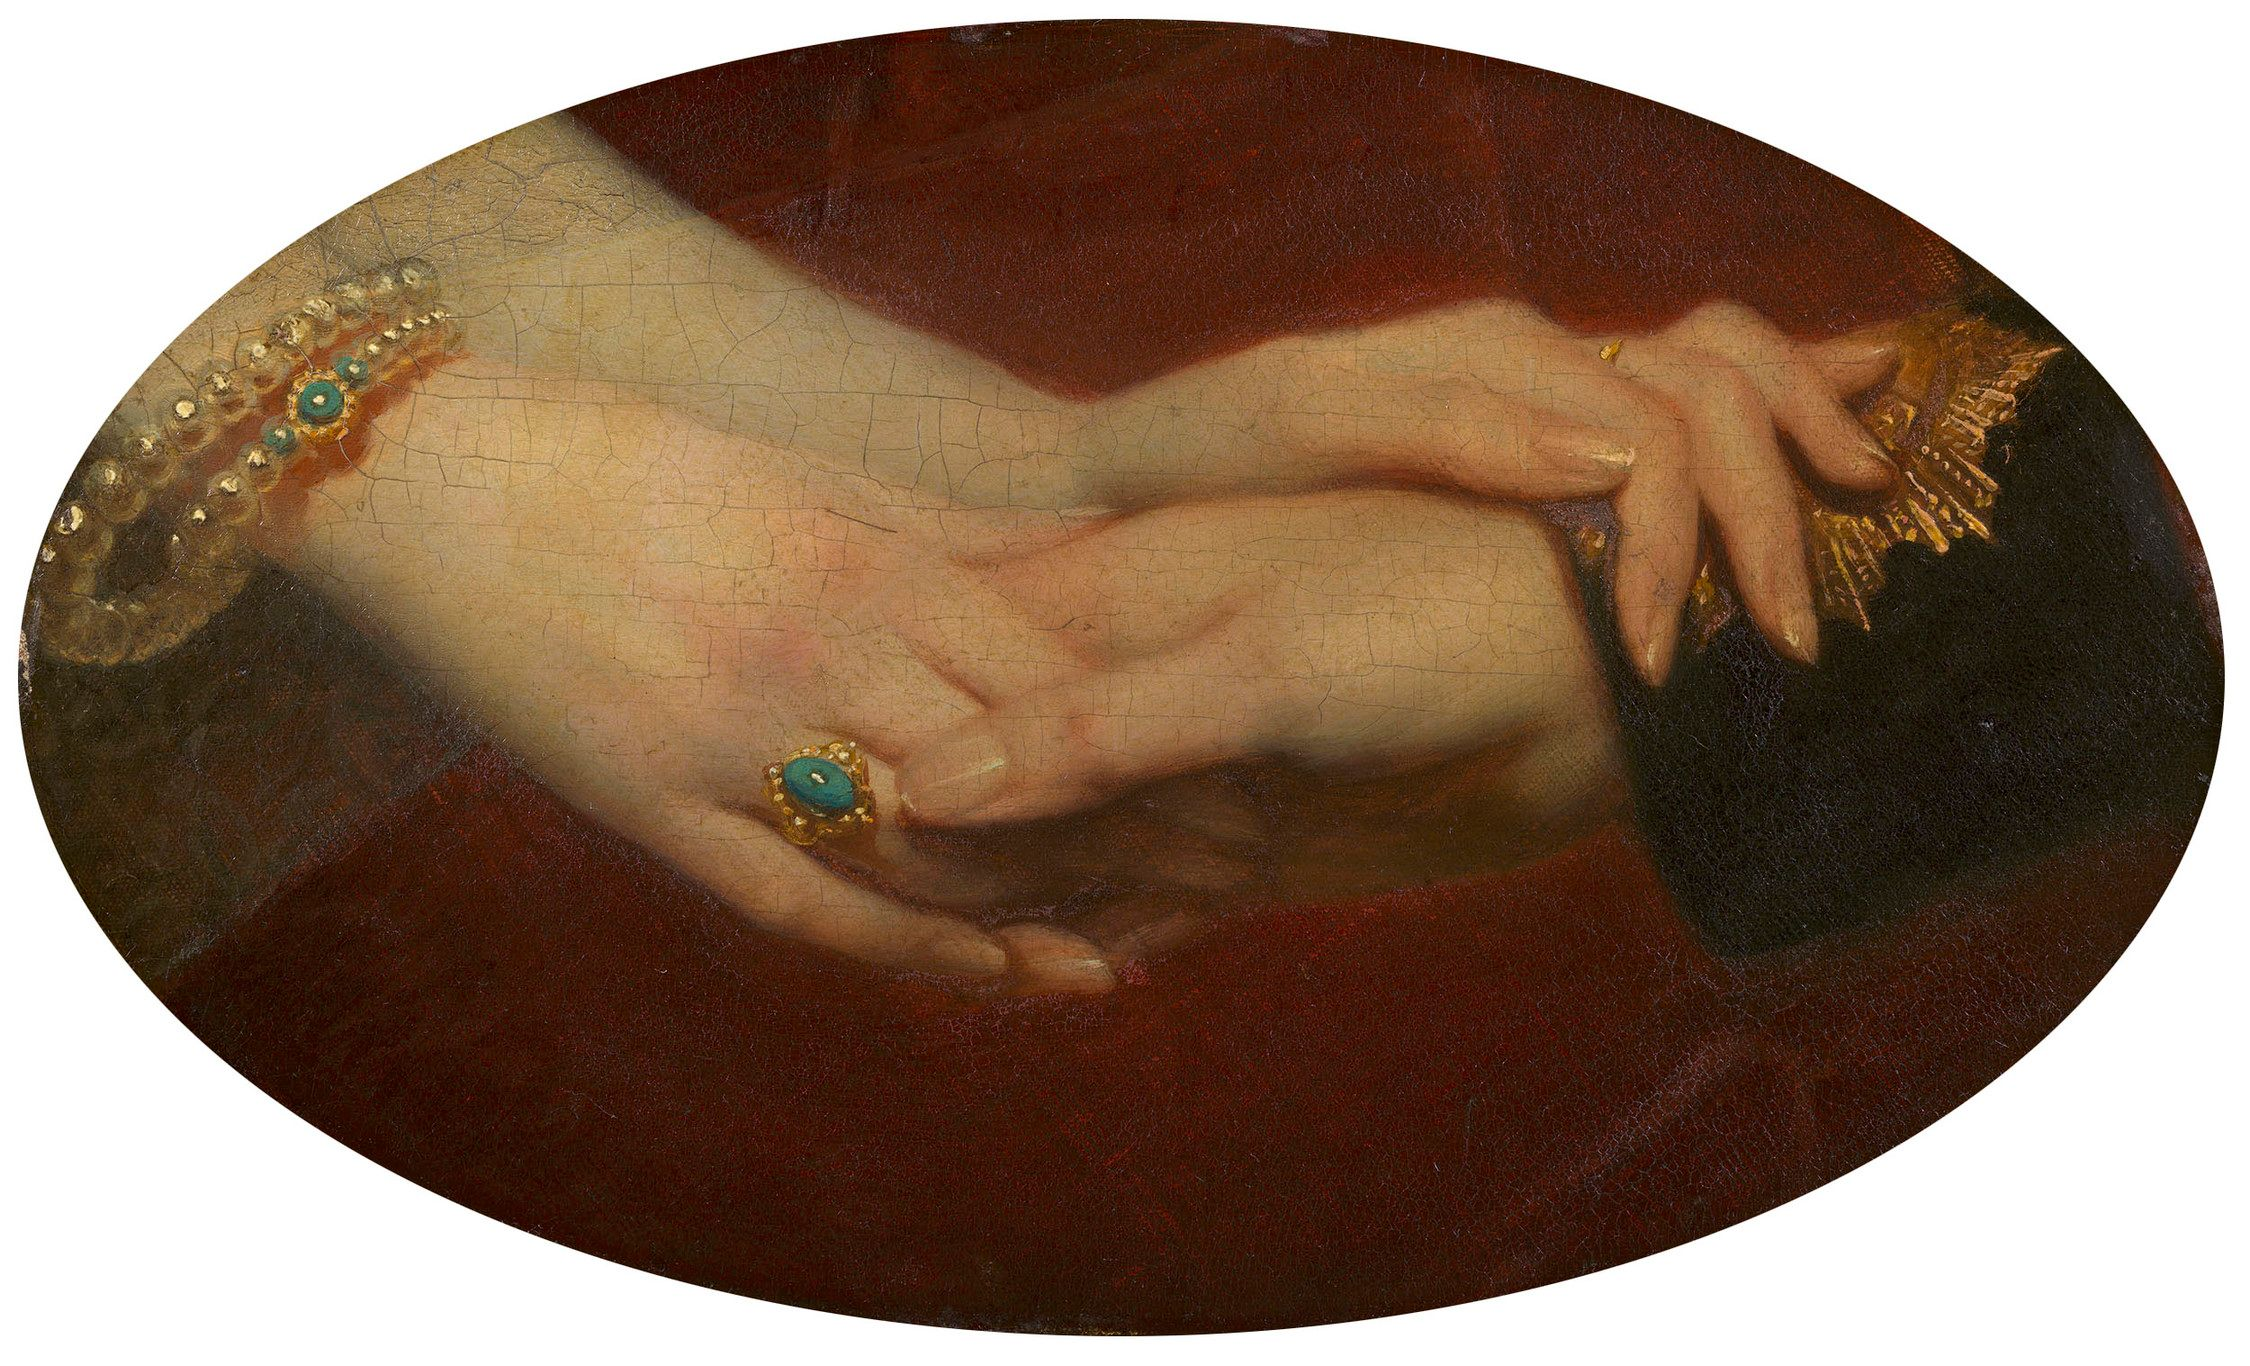 Linked hands of Victoria and Albert, Franz Xaver Winterhalter, in the Royal Collection Trust